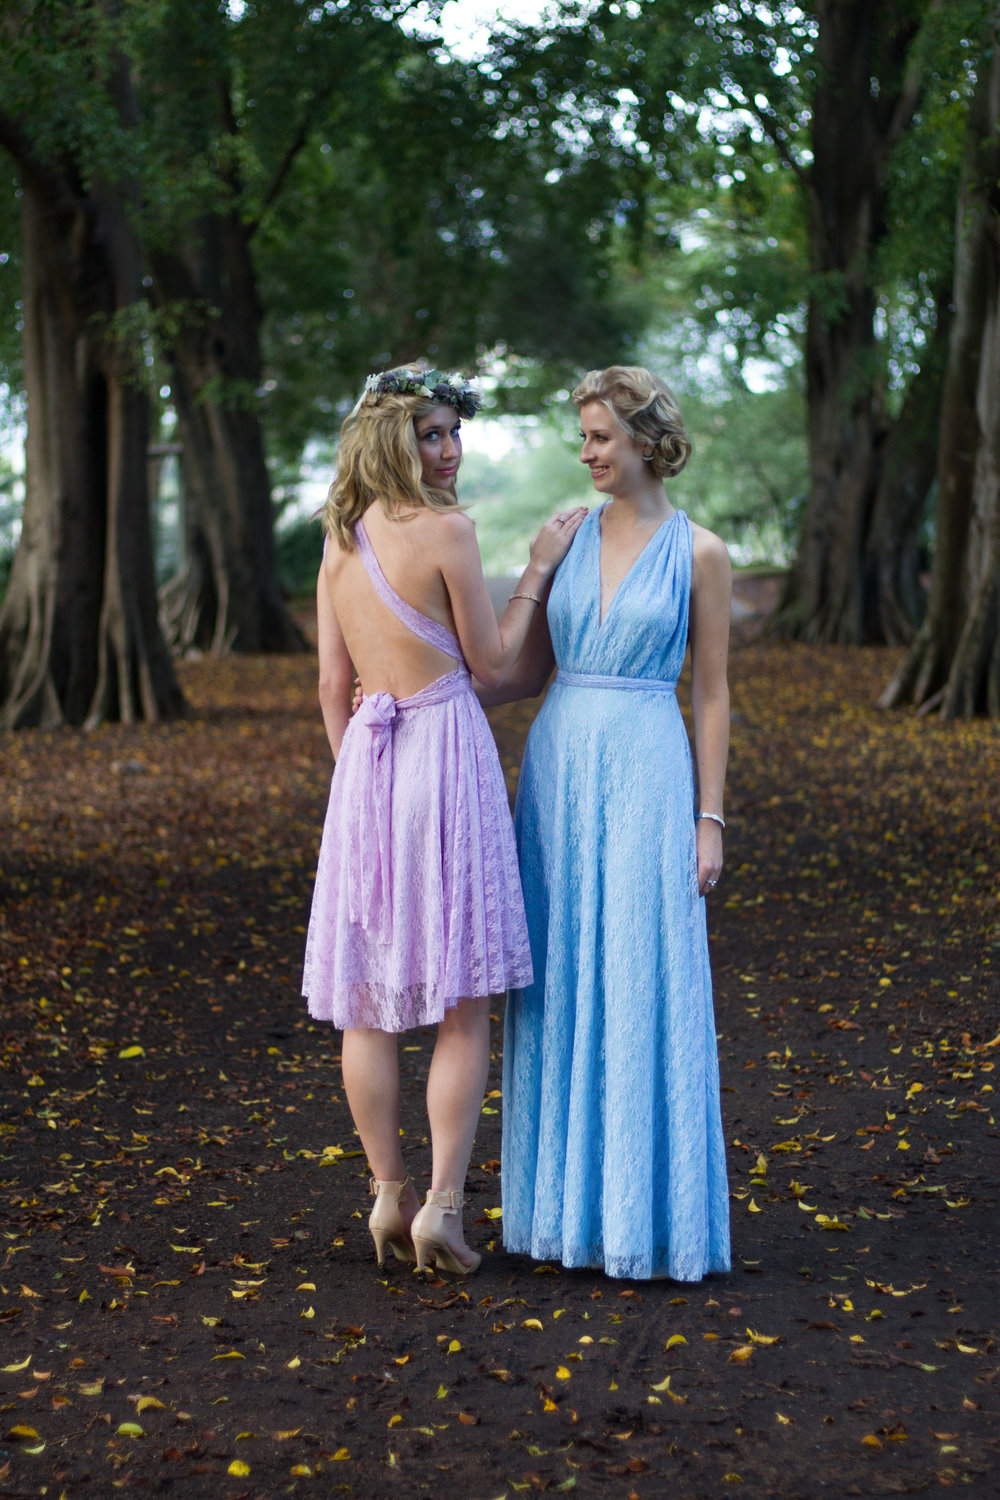 Bride Gold Metallic Wedding Dress Floral Crown Bohemian Chic Styling Brisbane Botanic Gardens Creative Photoshoot Lace Bridesmaid Dresses www.adella.photography